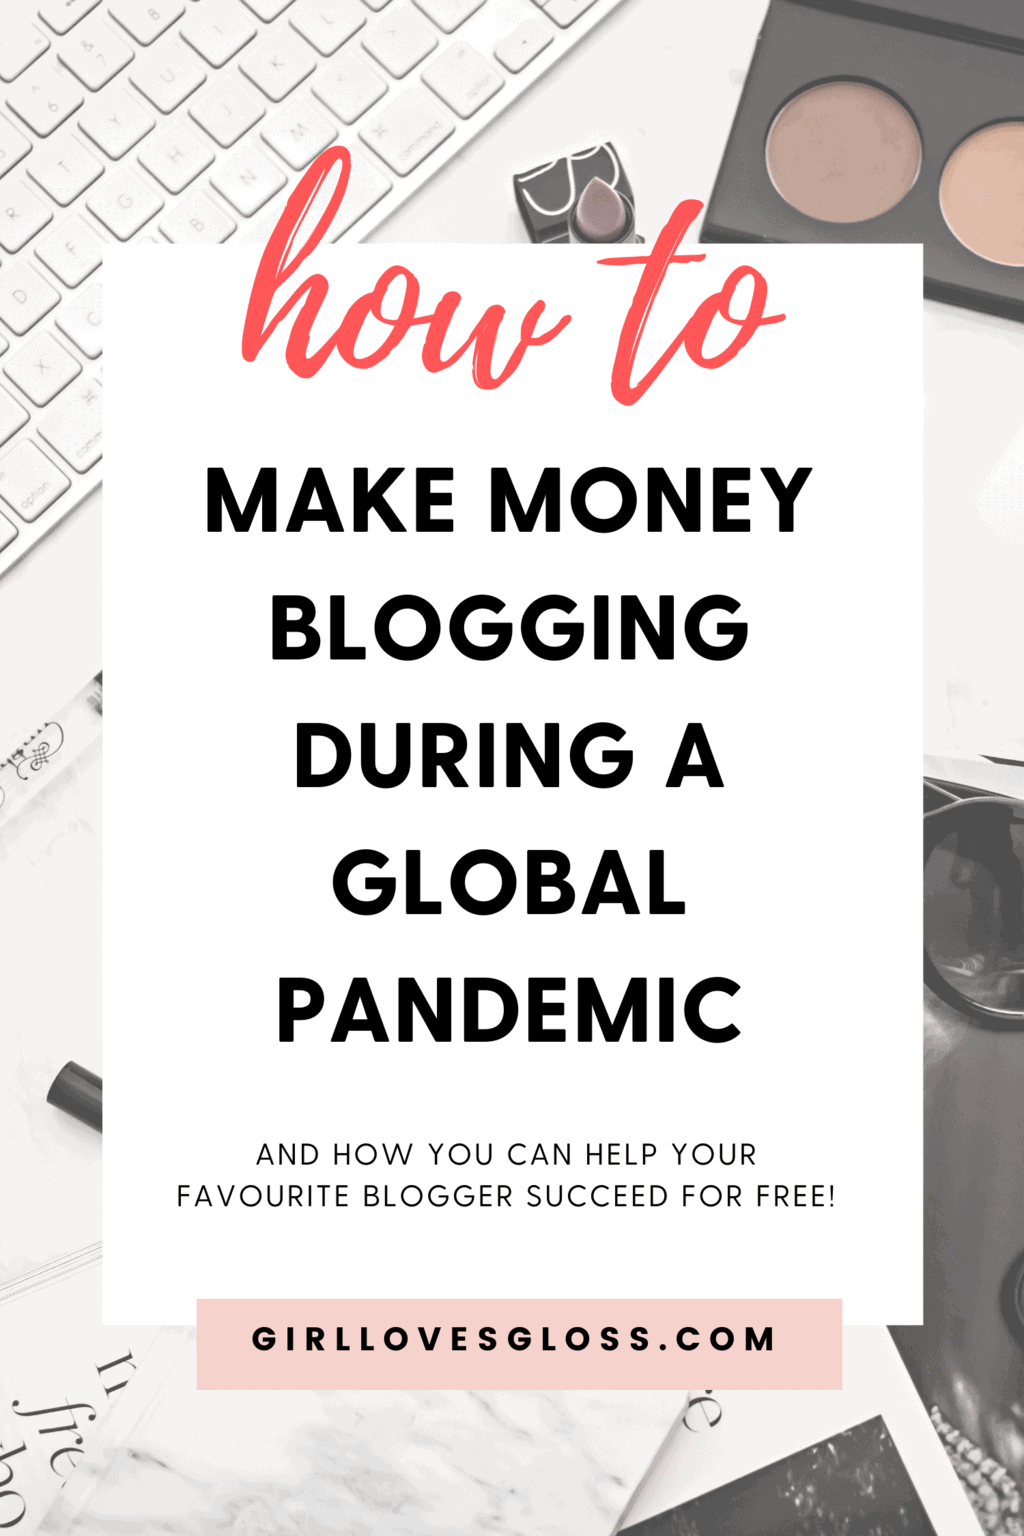 How to make money blogging during the covid 19 pandemic